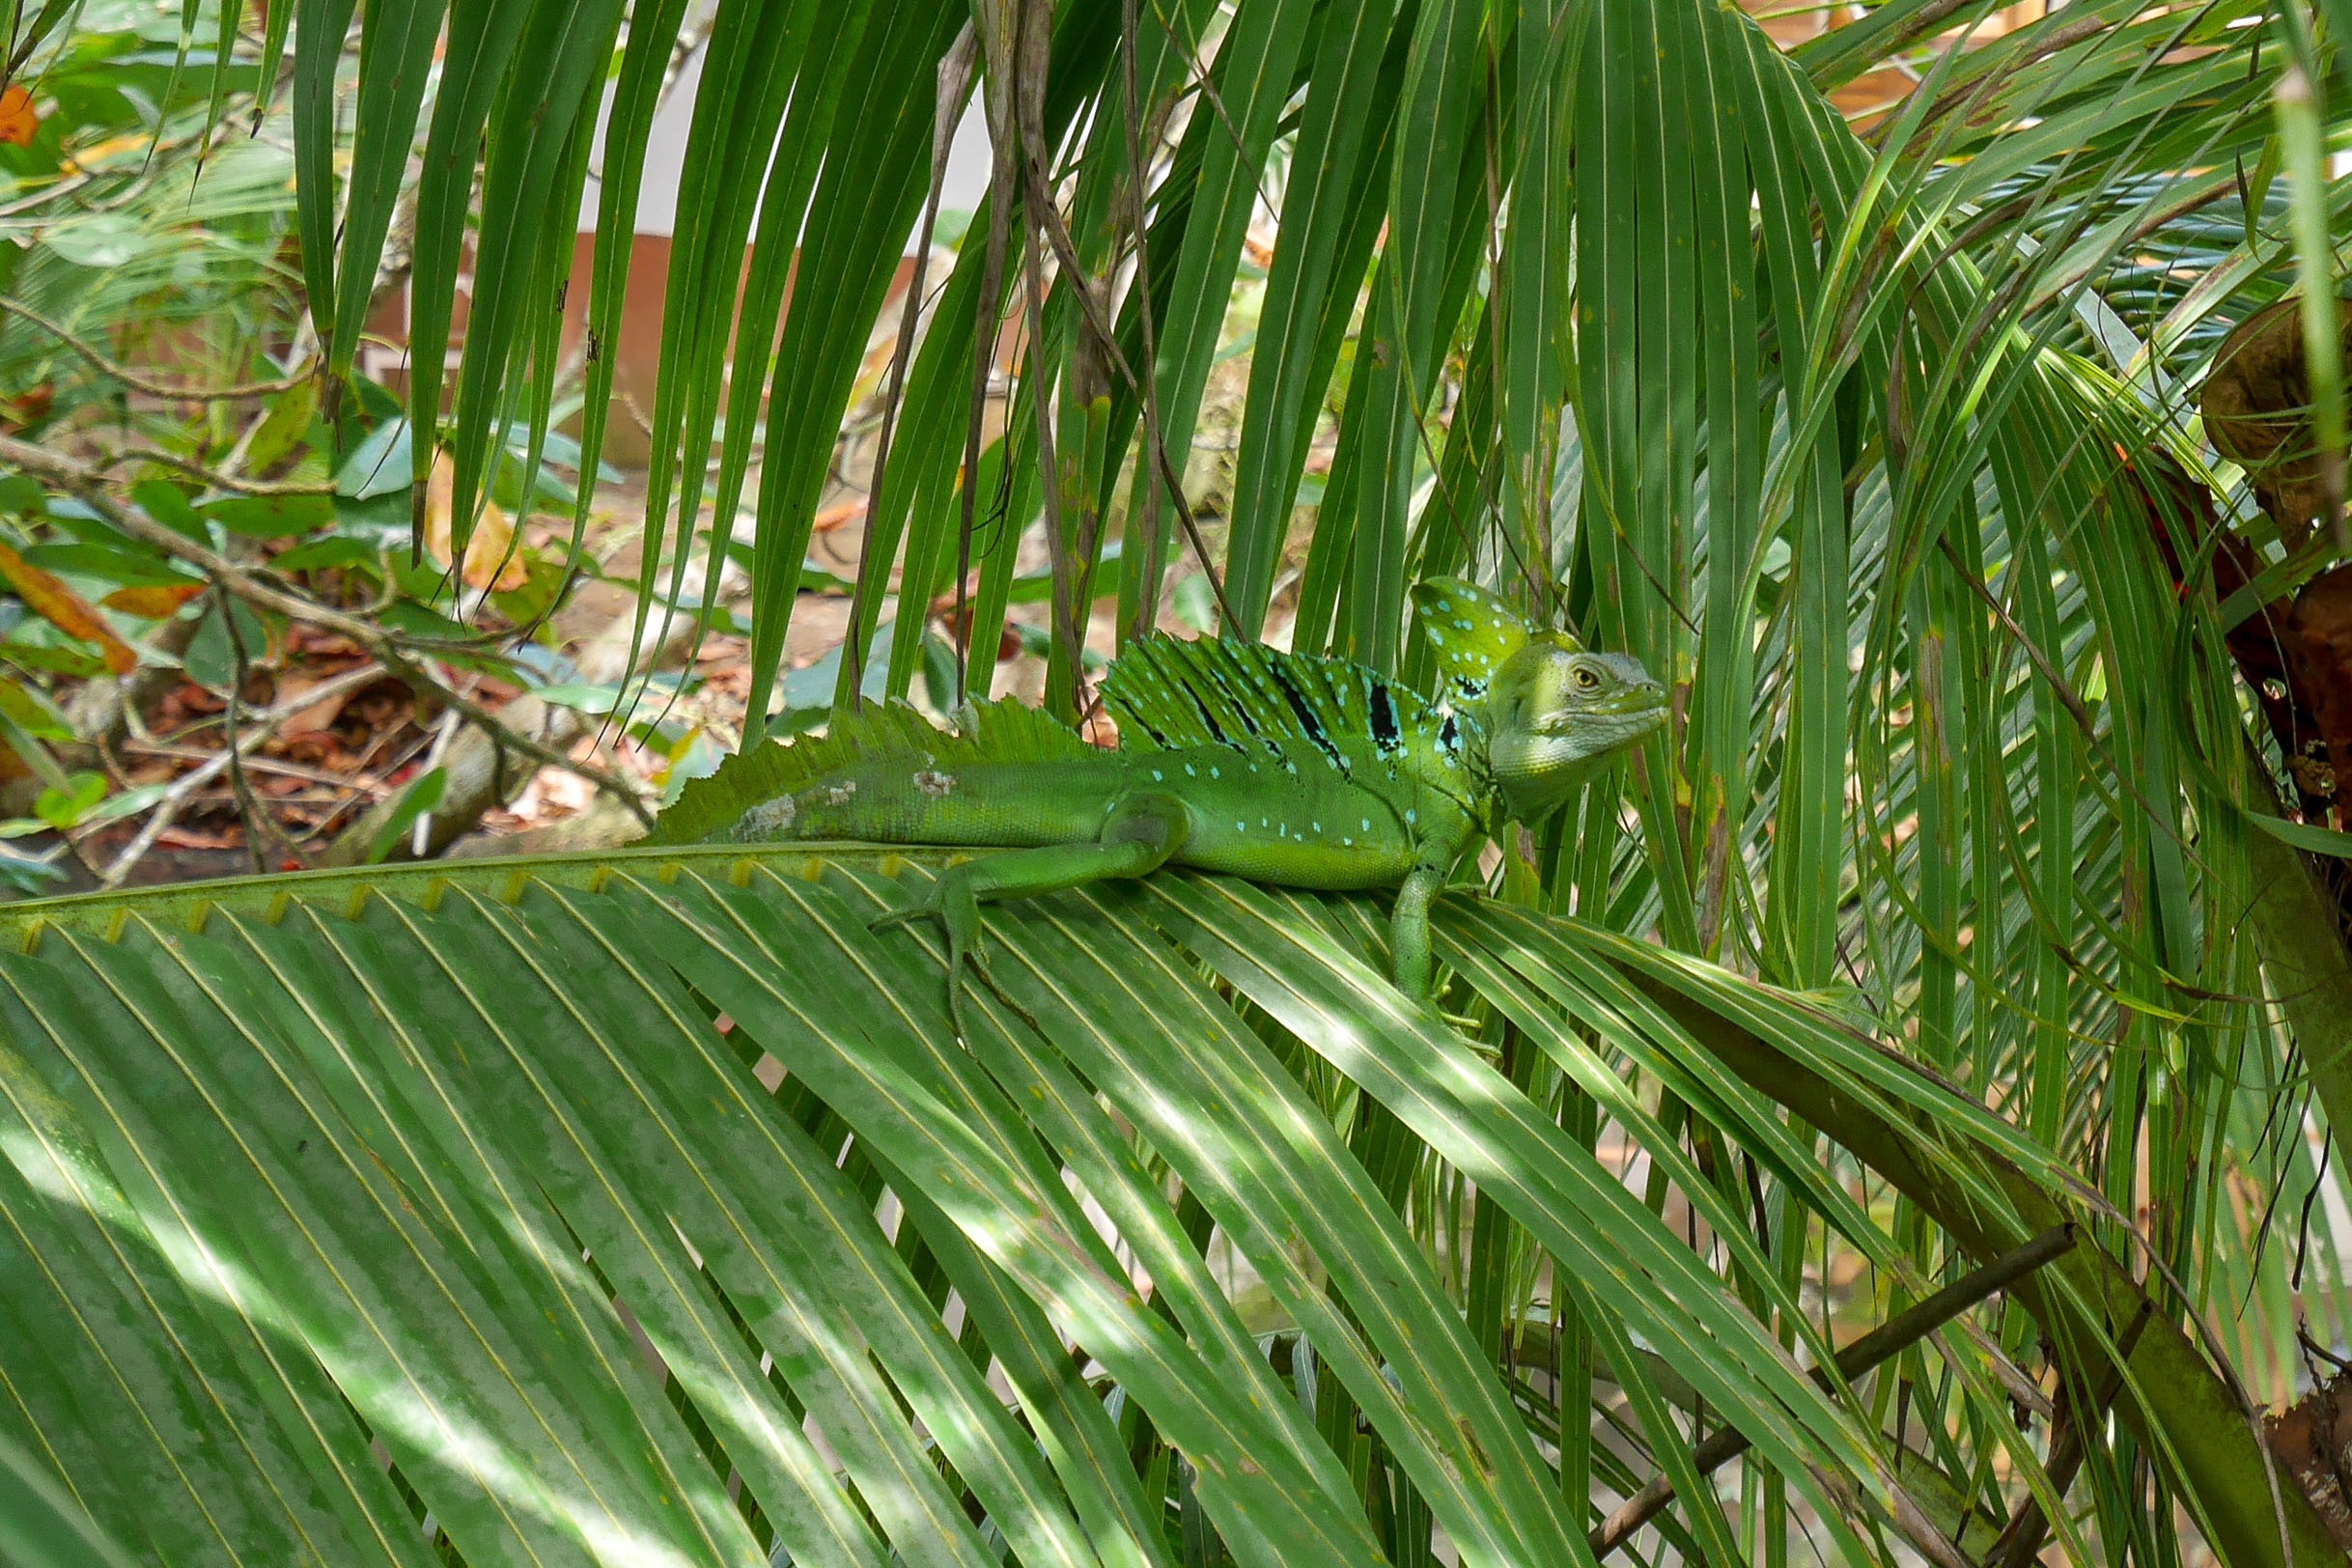 Fifty shades of green: Costa Rica